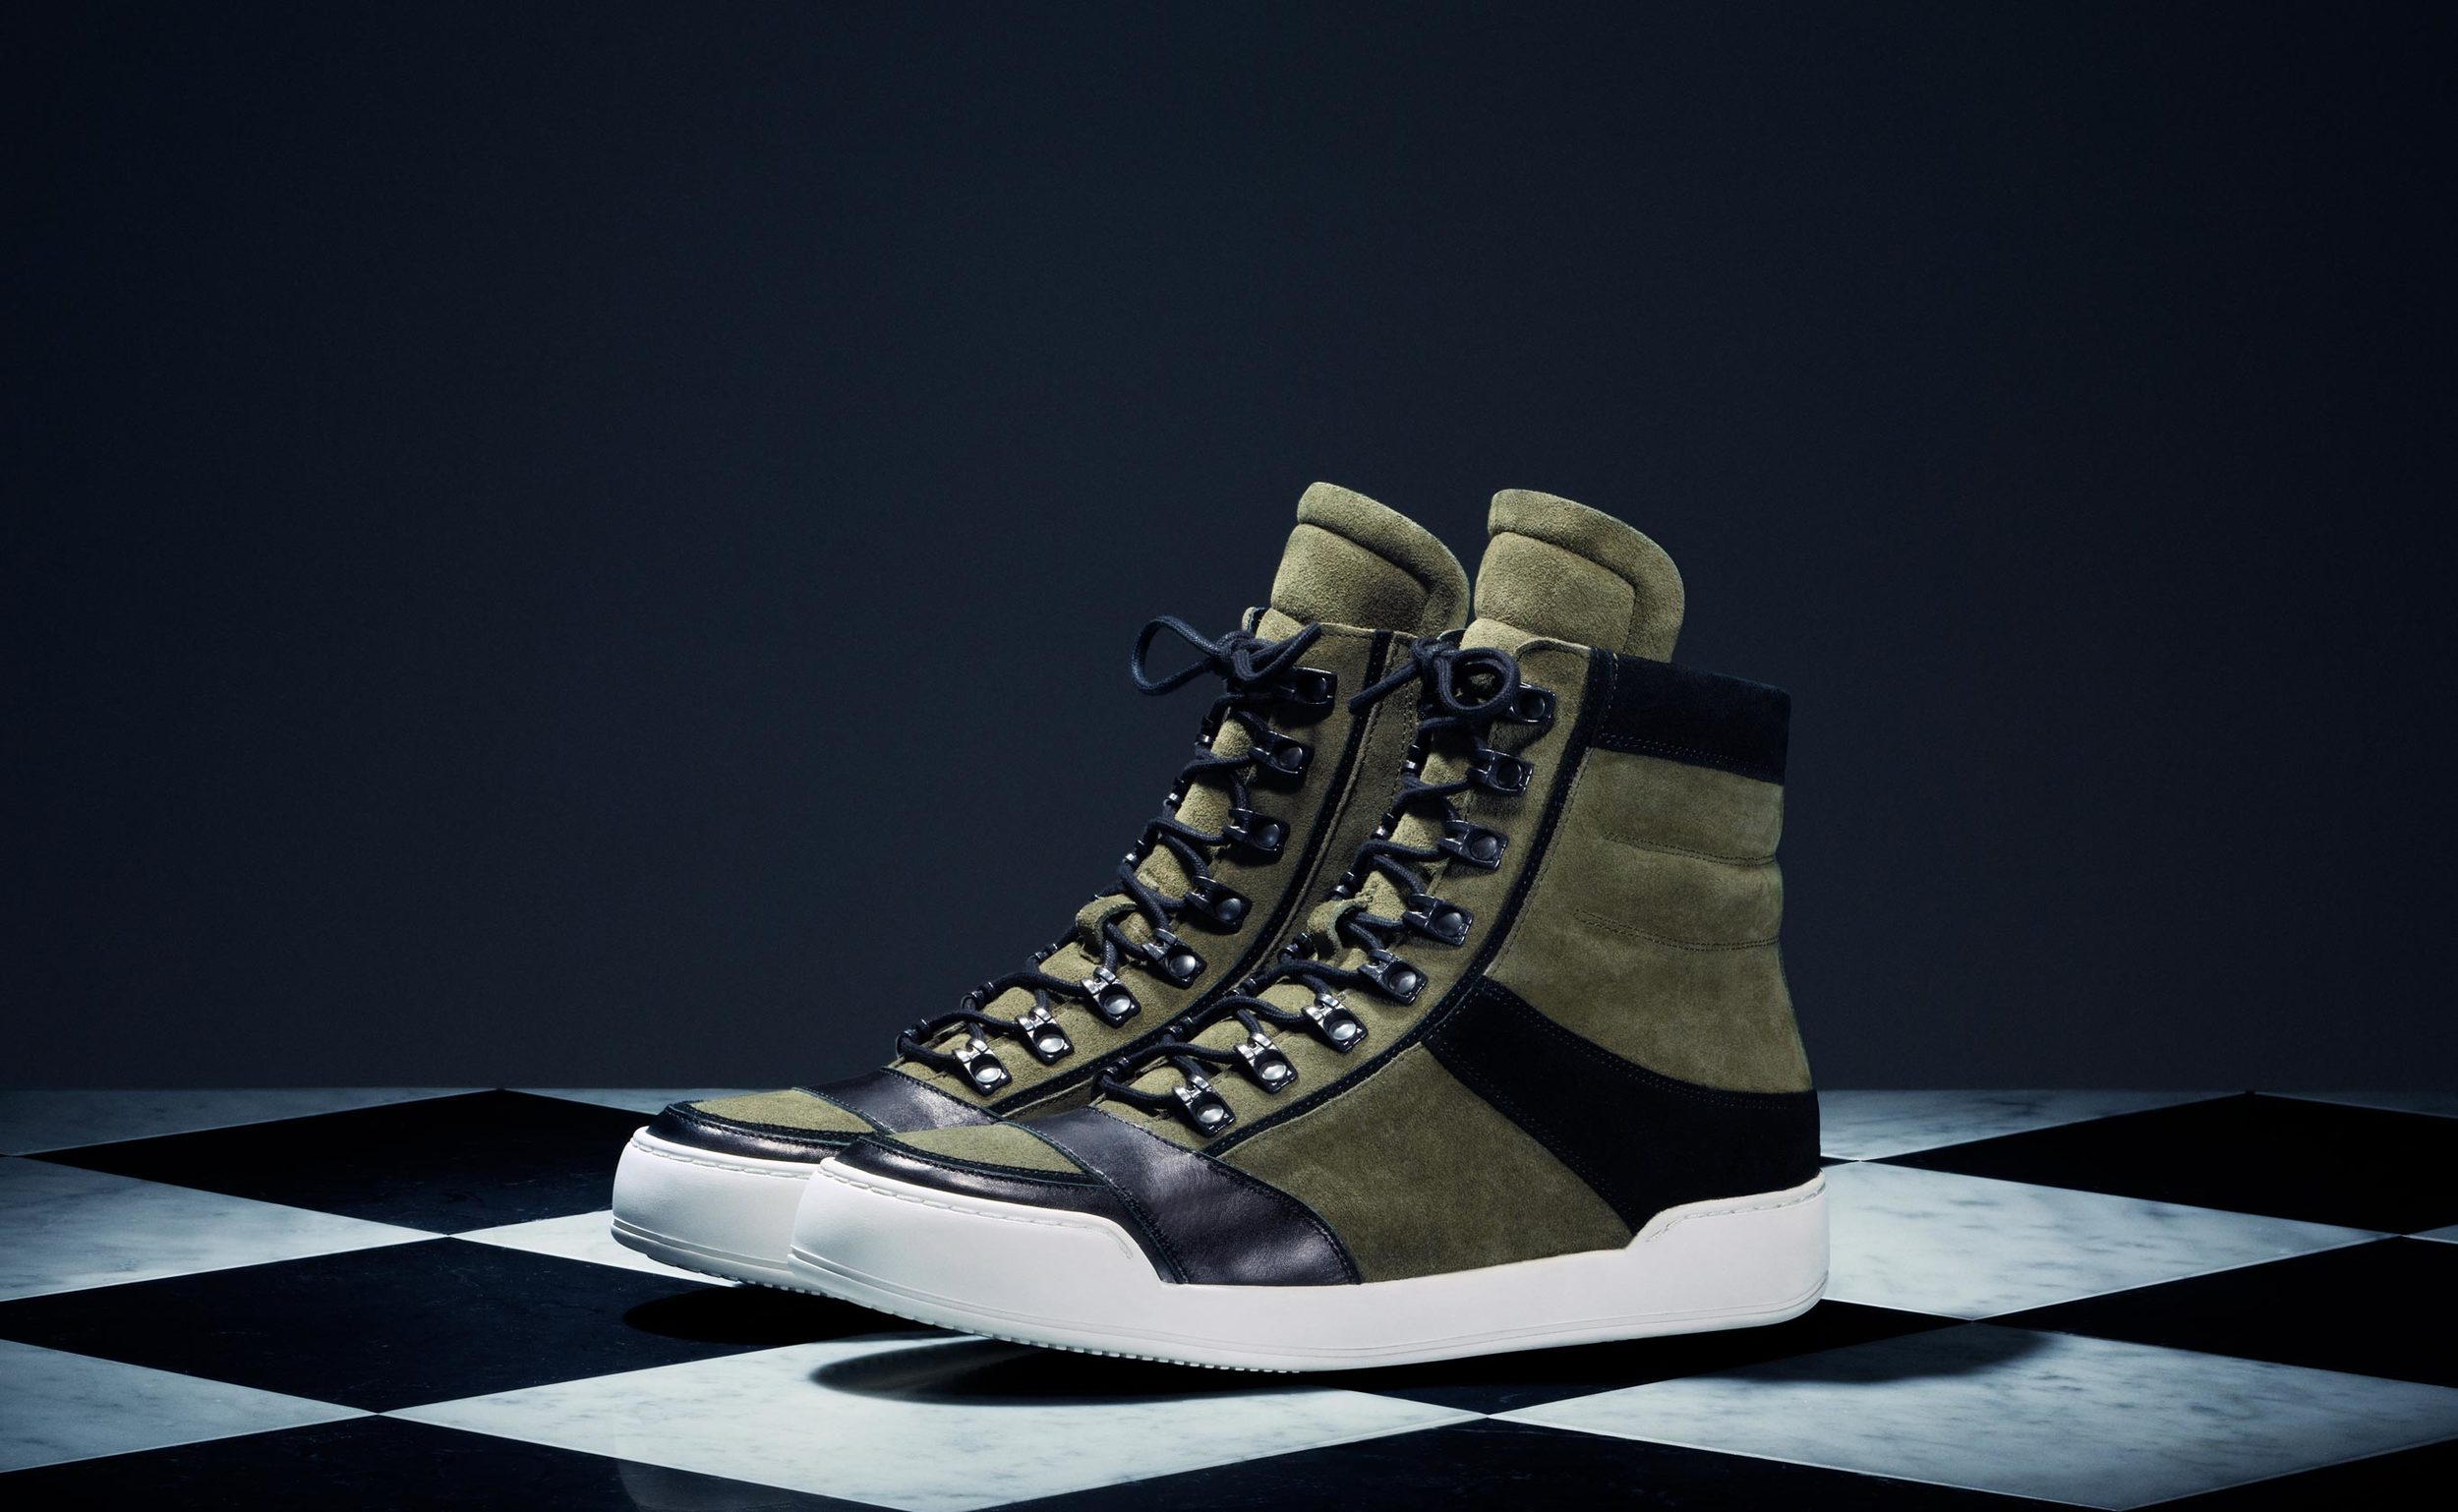 Suede Boots - $99